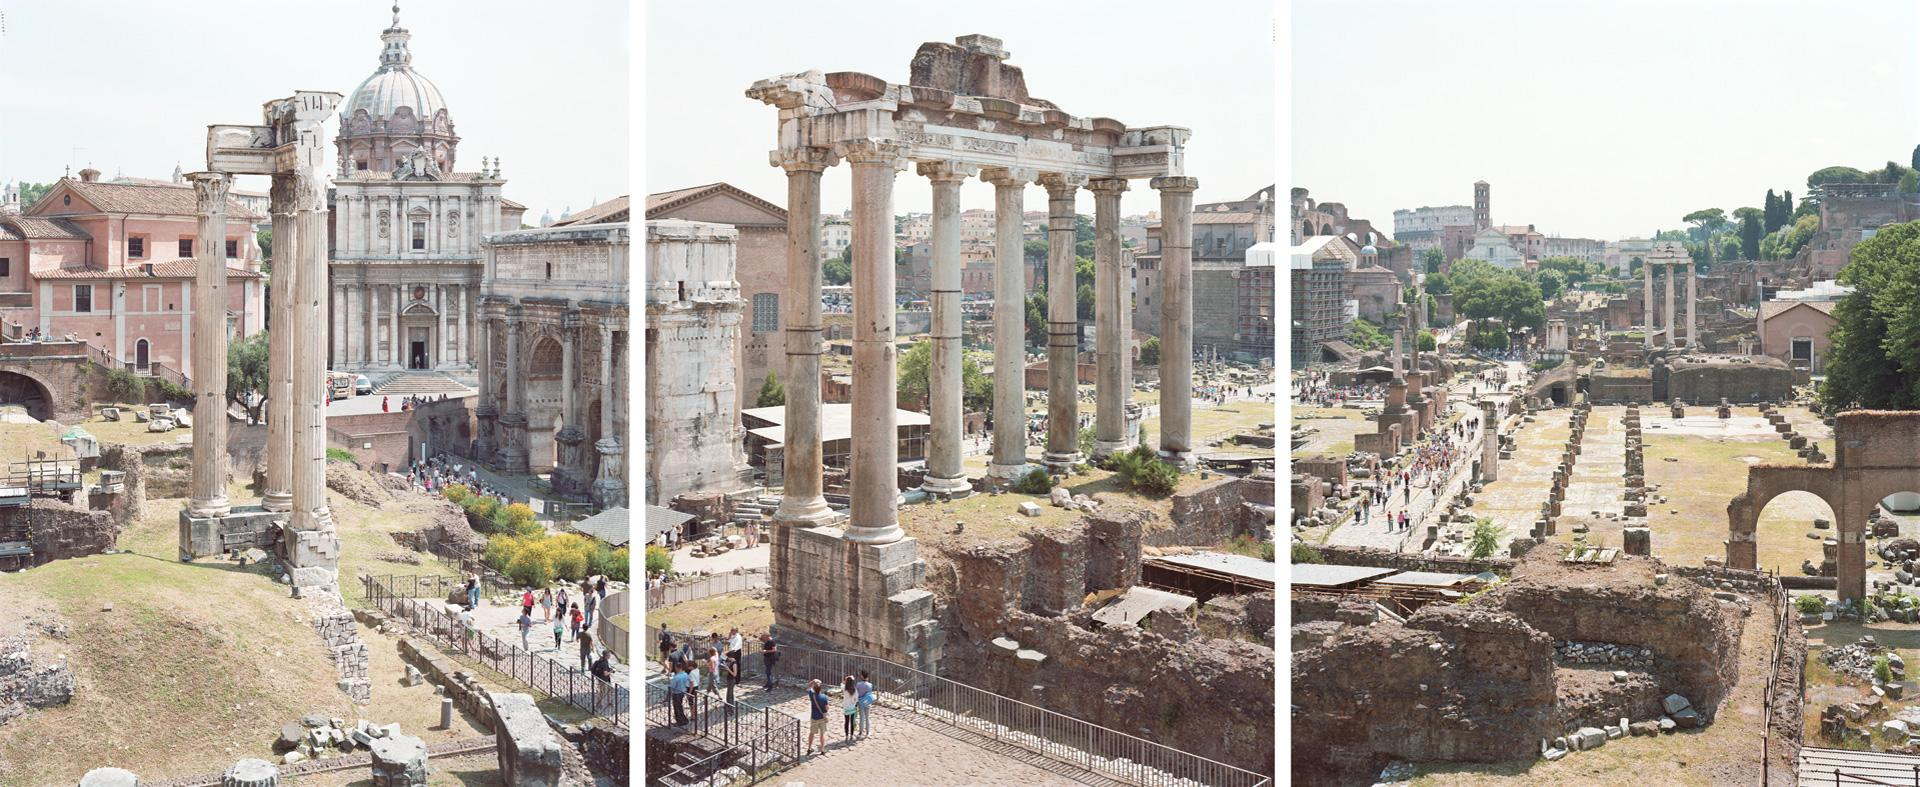 Trittico Forum (2011) - large format triptych photograph of iconic Roman site